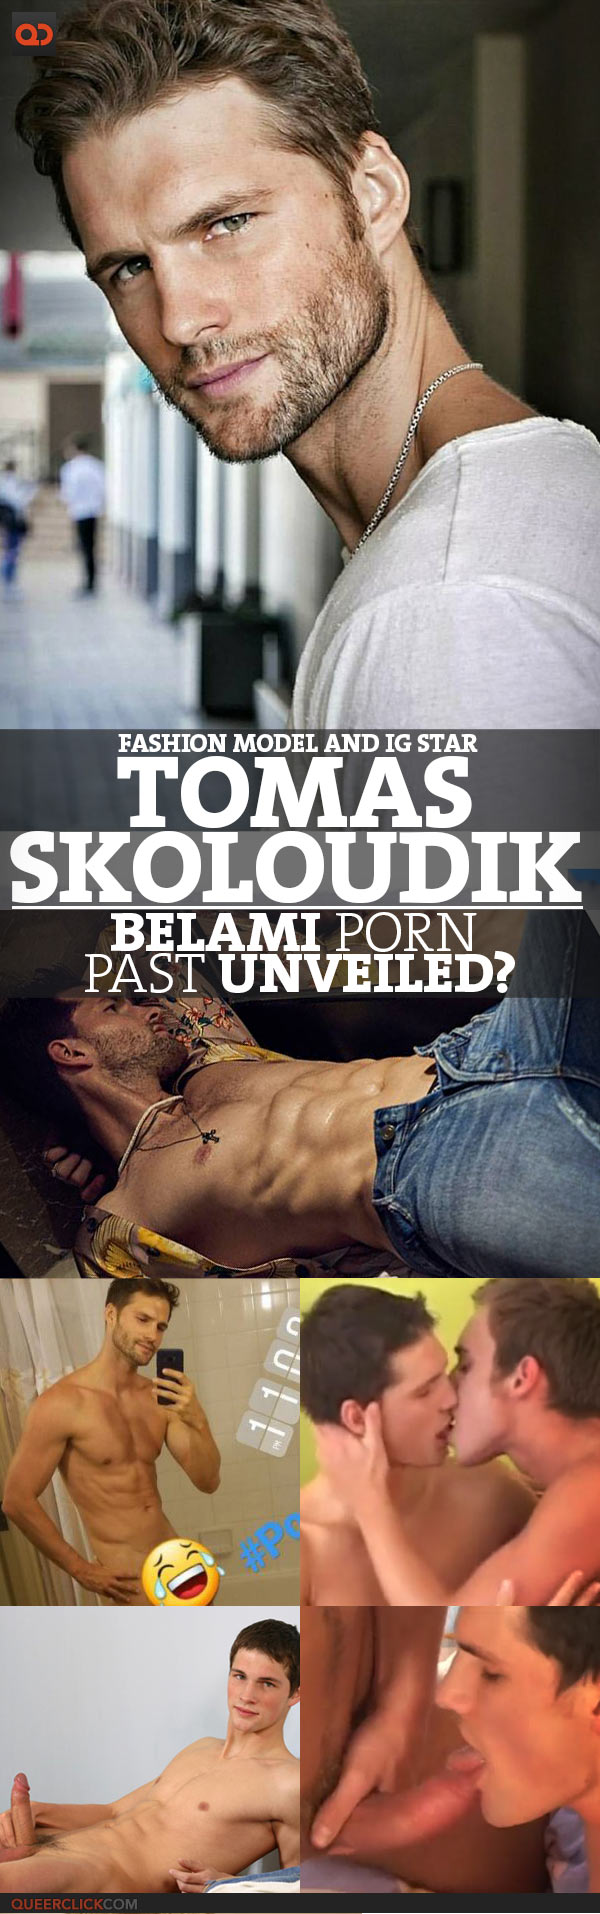 Tomas Skoloudik, Fashion Model And IG Star, BelAmi Porn Past Unveiled?